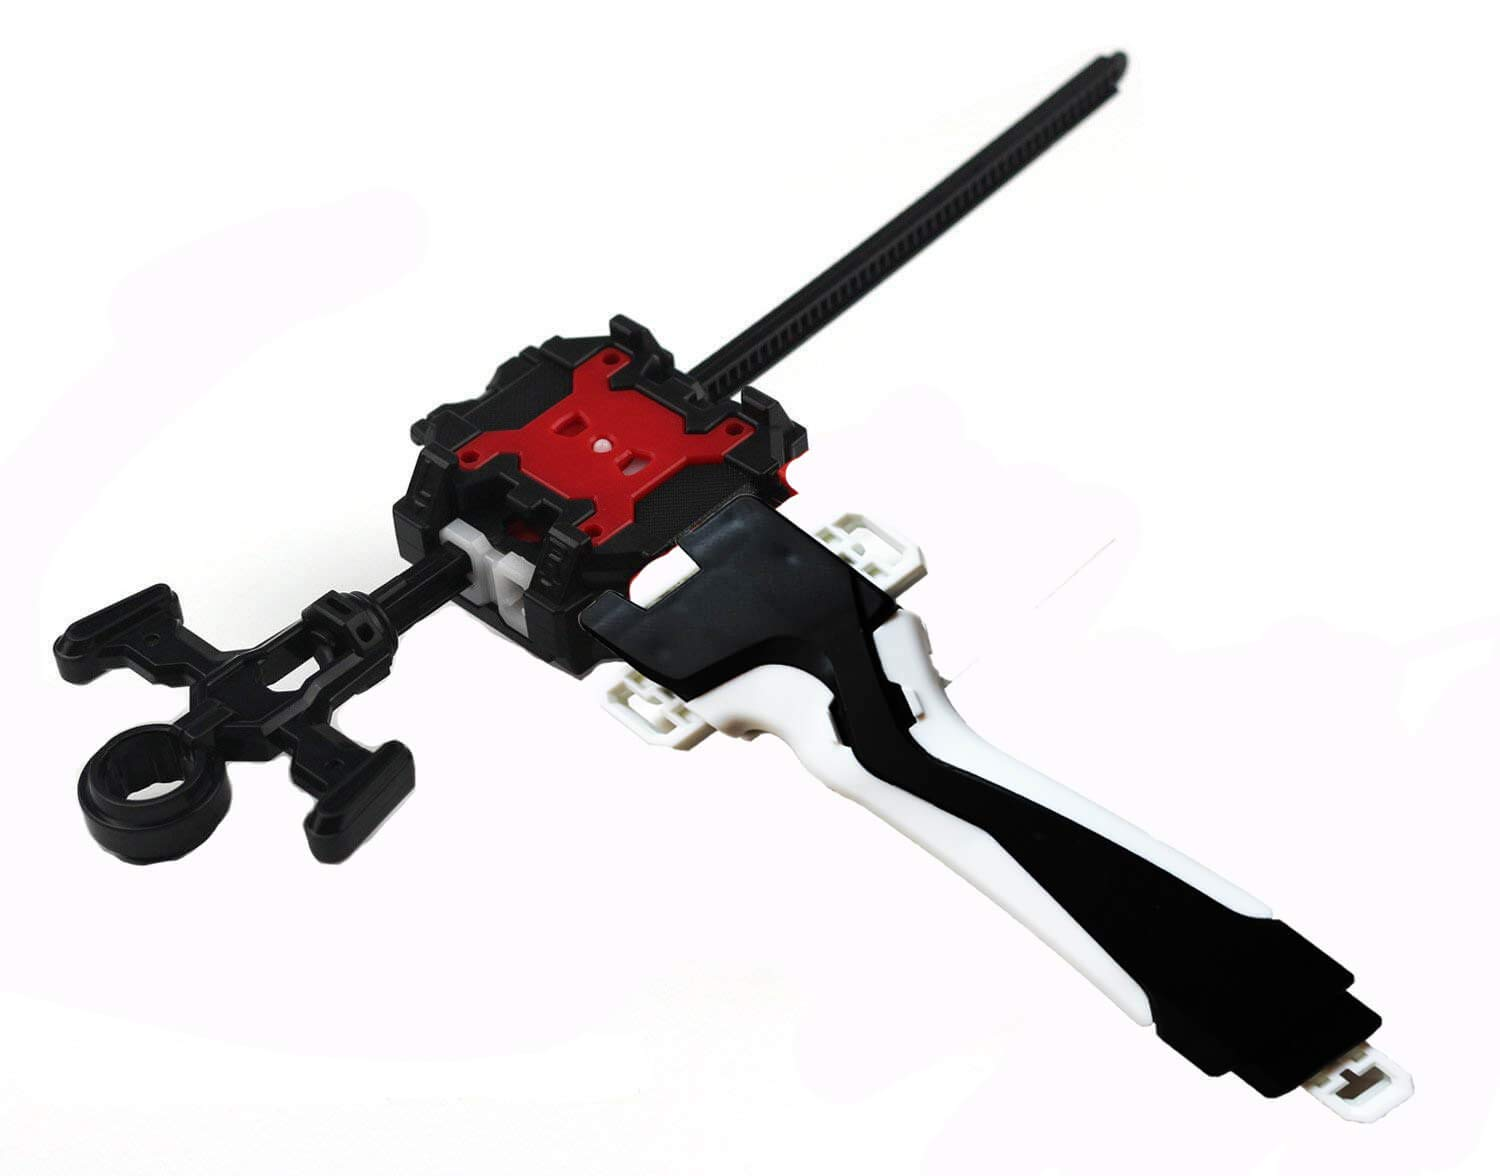 Bey Battle Burst Power Ripcord Launcher LR and Grip by Poveyan